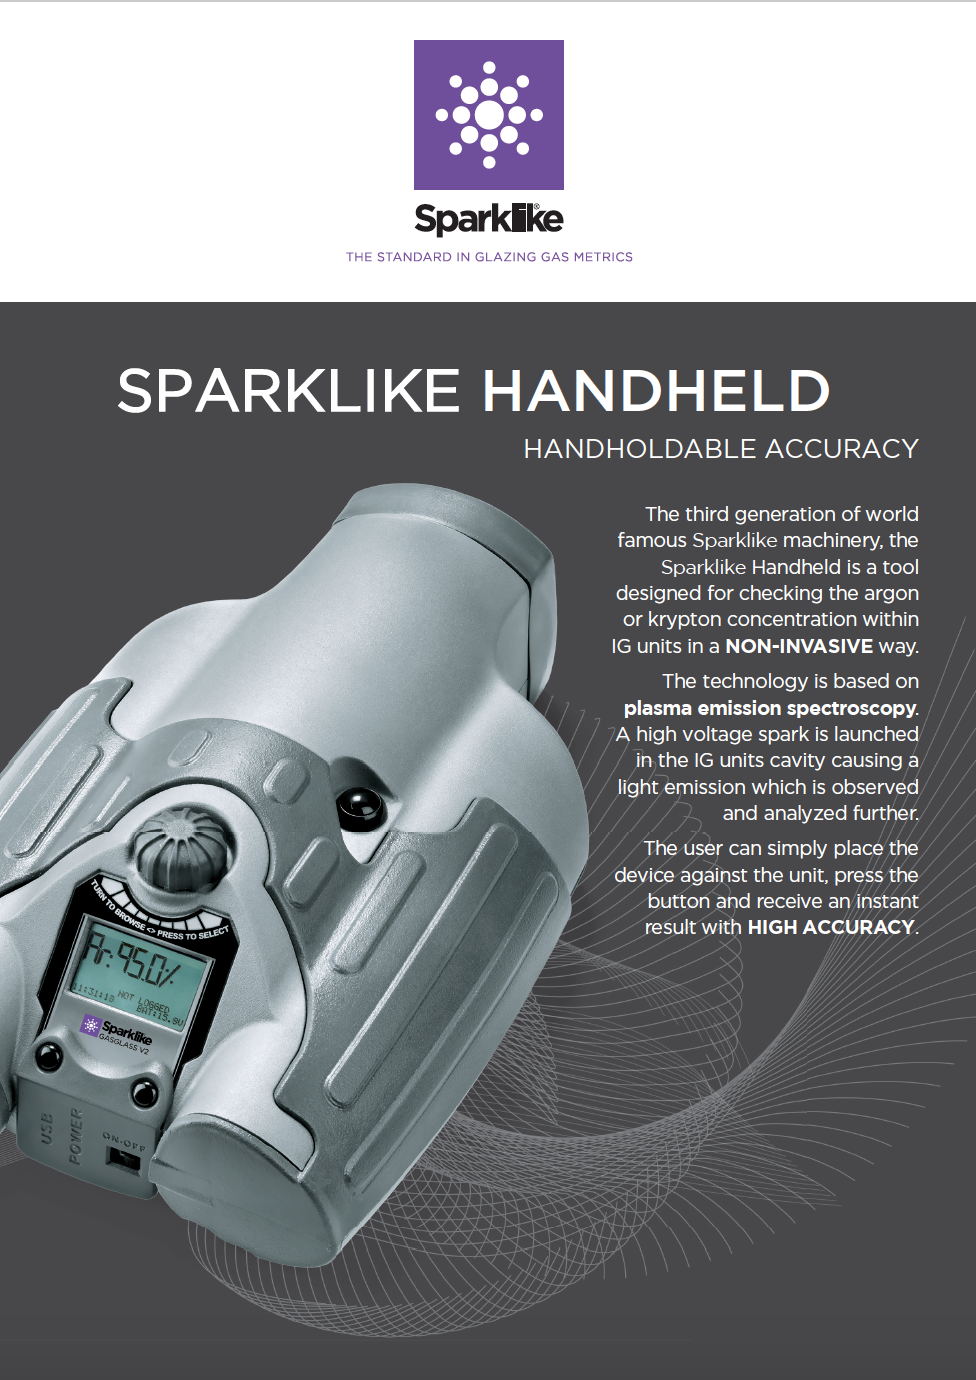 Sparklike Handheld for non-destructive argon gas fill analysis for double glazed insulating glass units